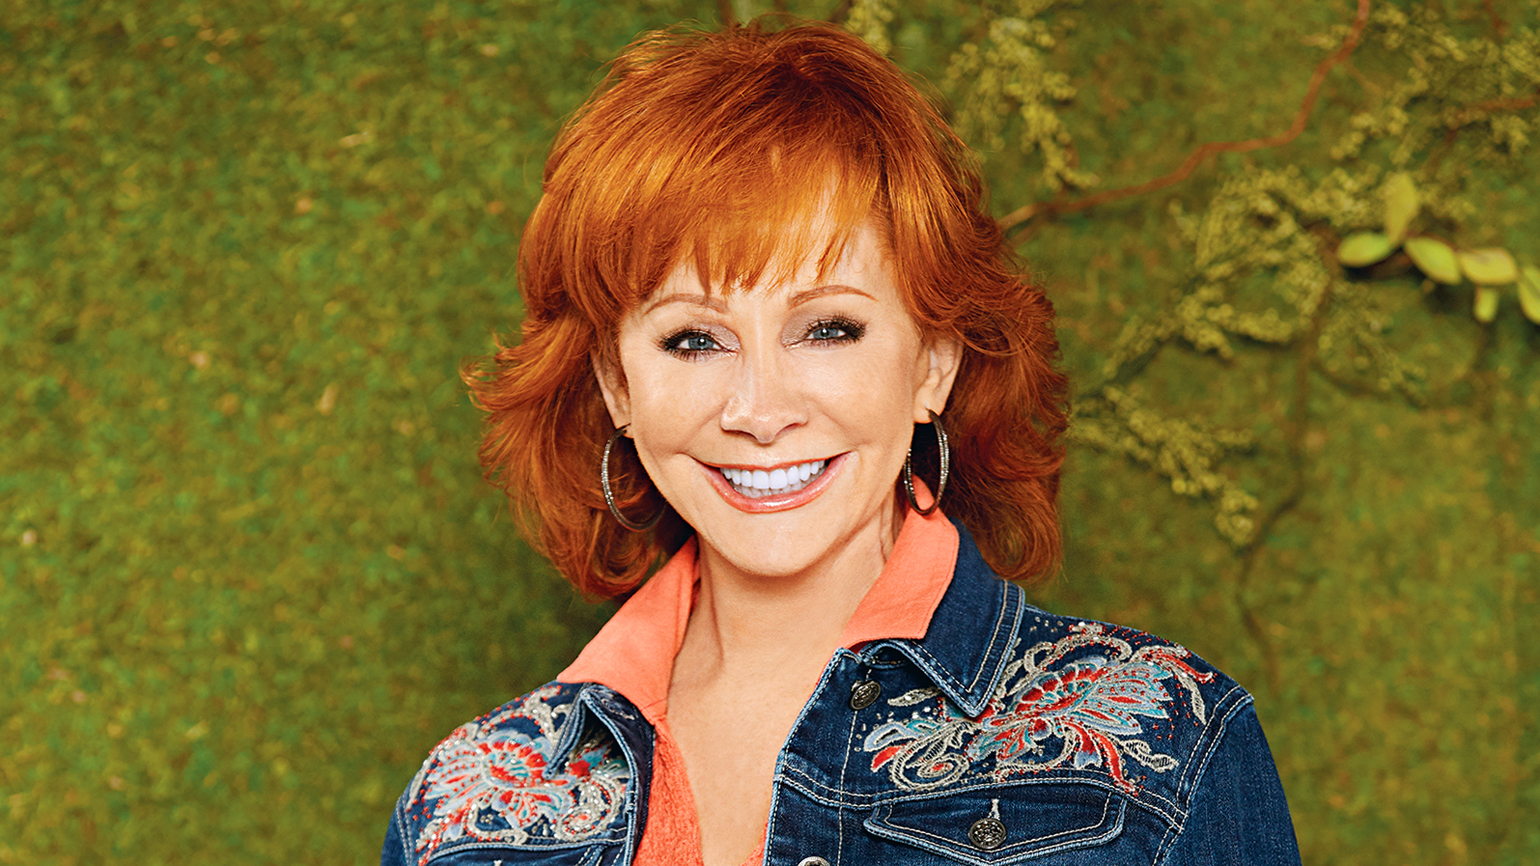 Country music superstar Reba McEntire